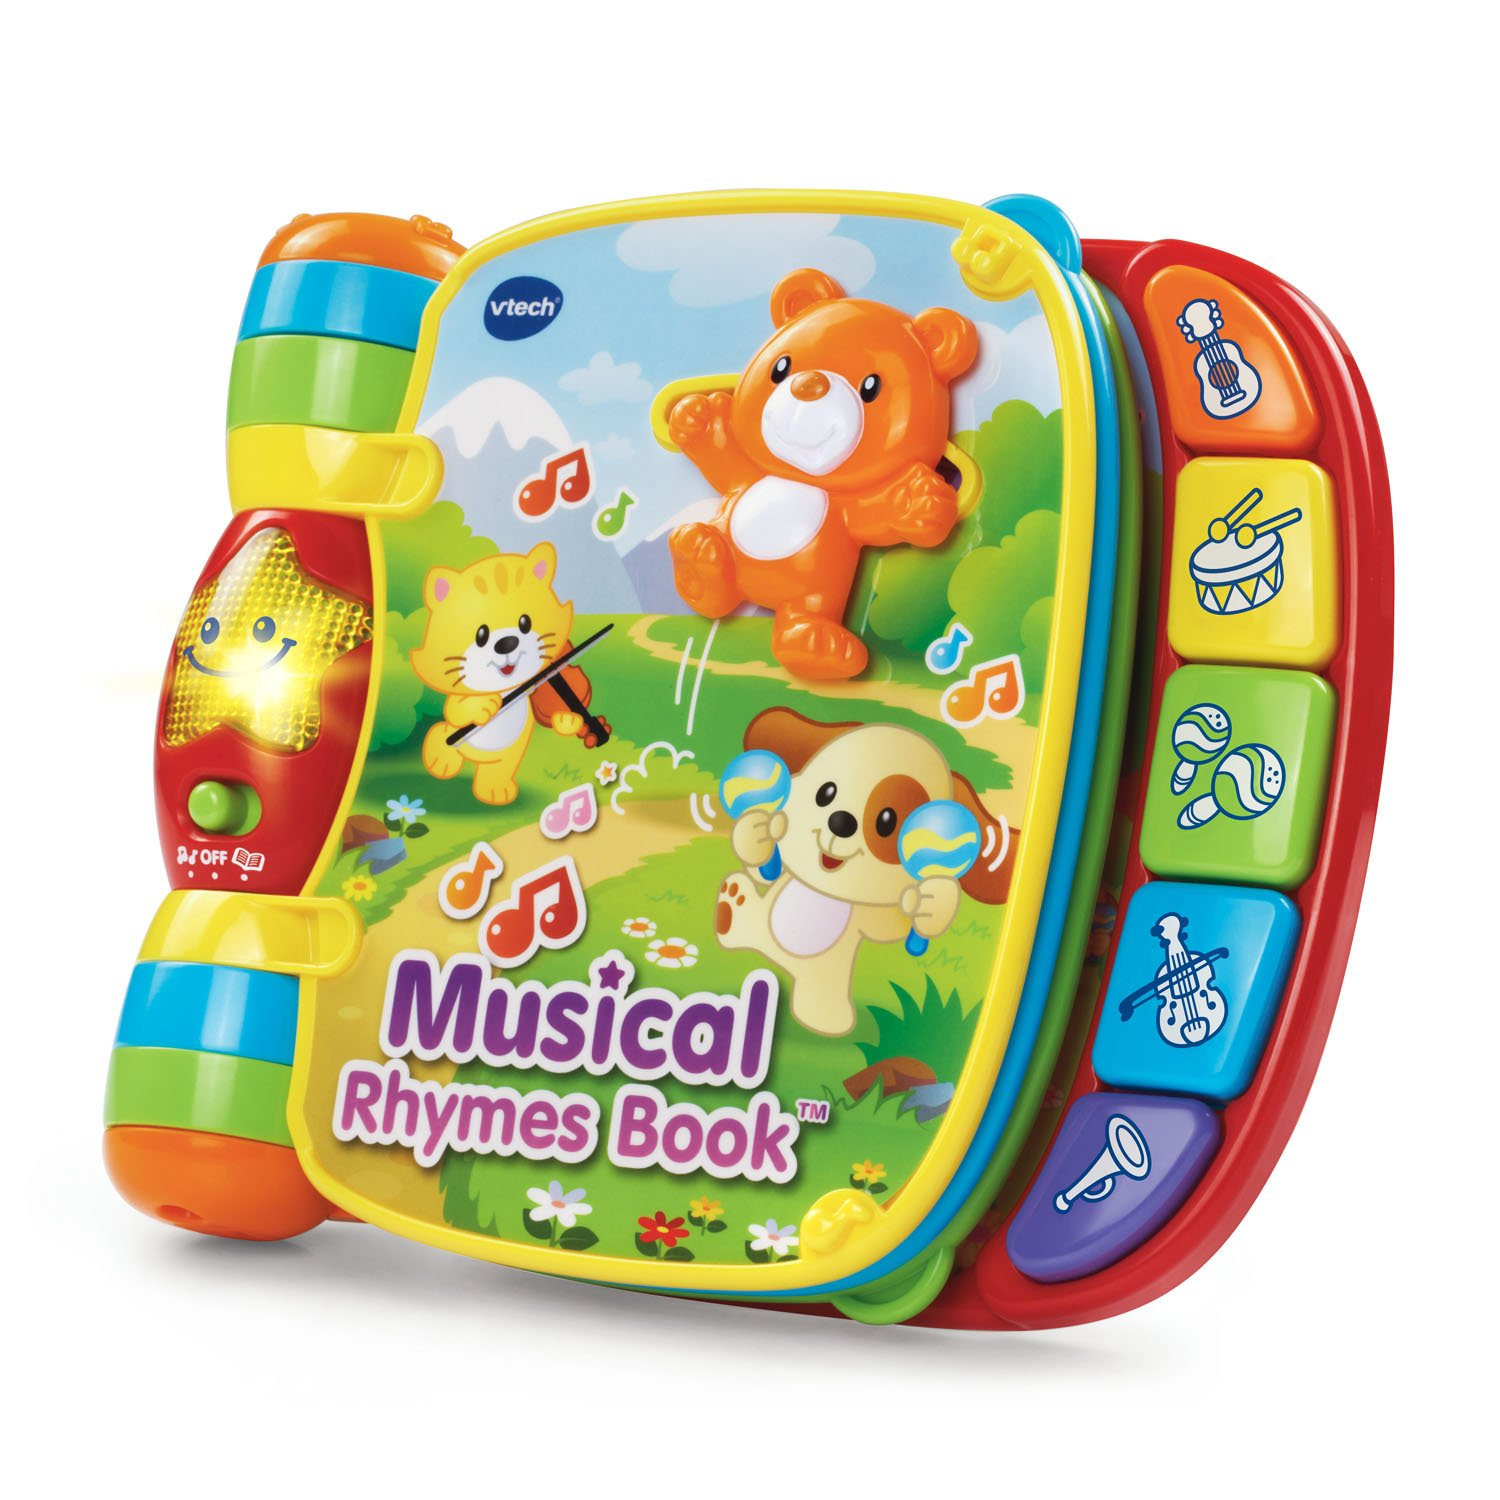 VTech Musical Rhymes Book VTech Amazon Toys & Games